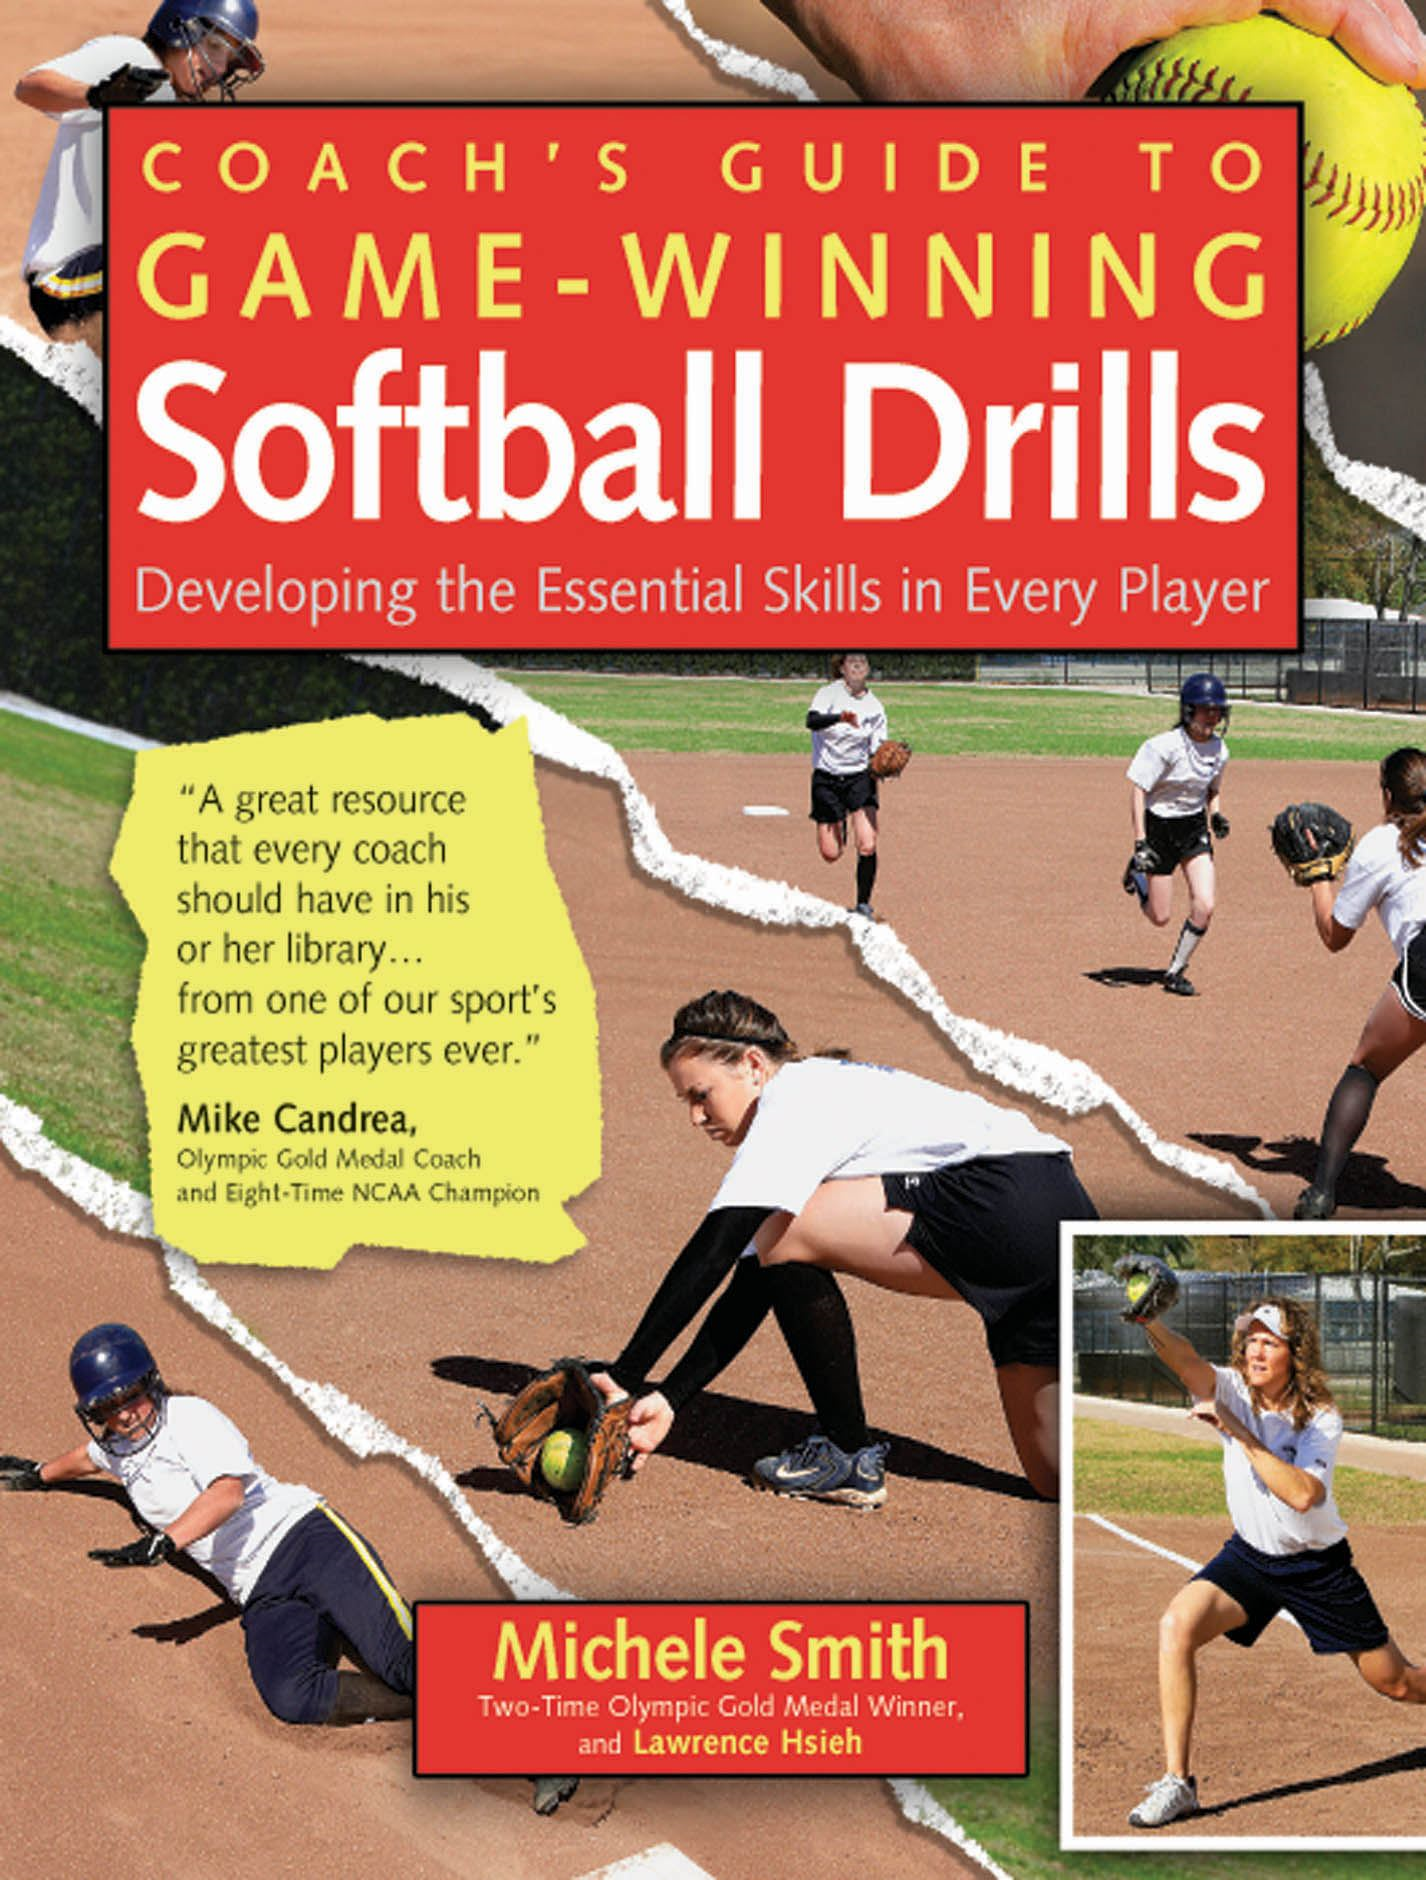 Coach's Guide to Game-Winning Softball Drills : Developing the Essential Skills in Every Player